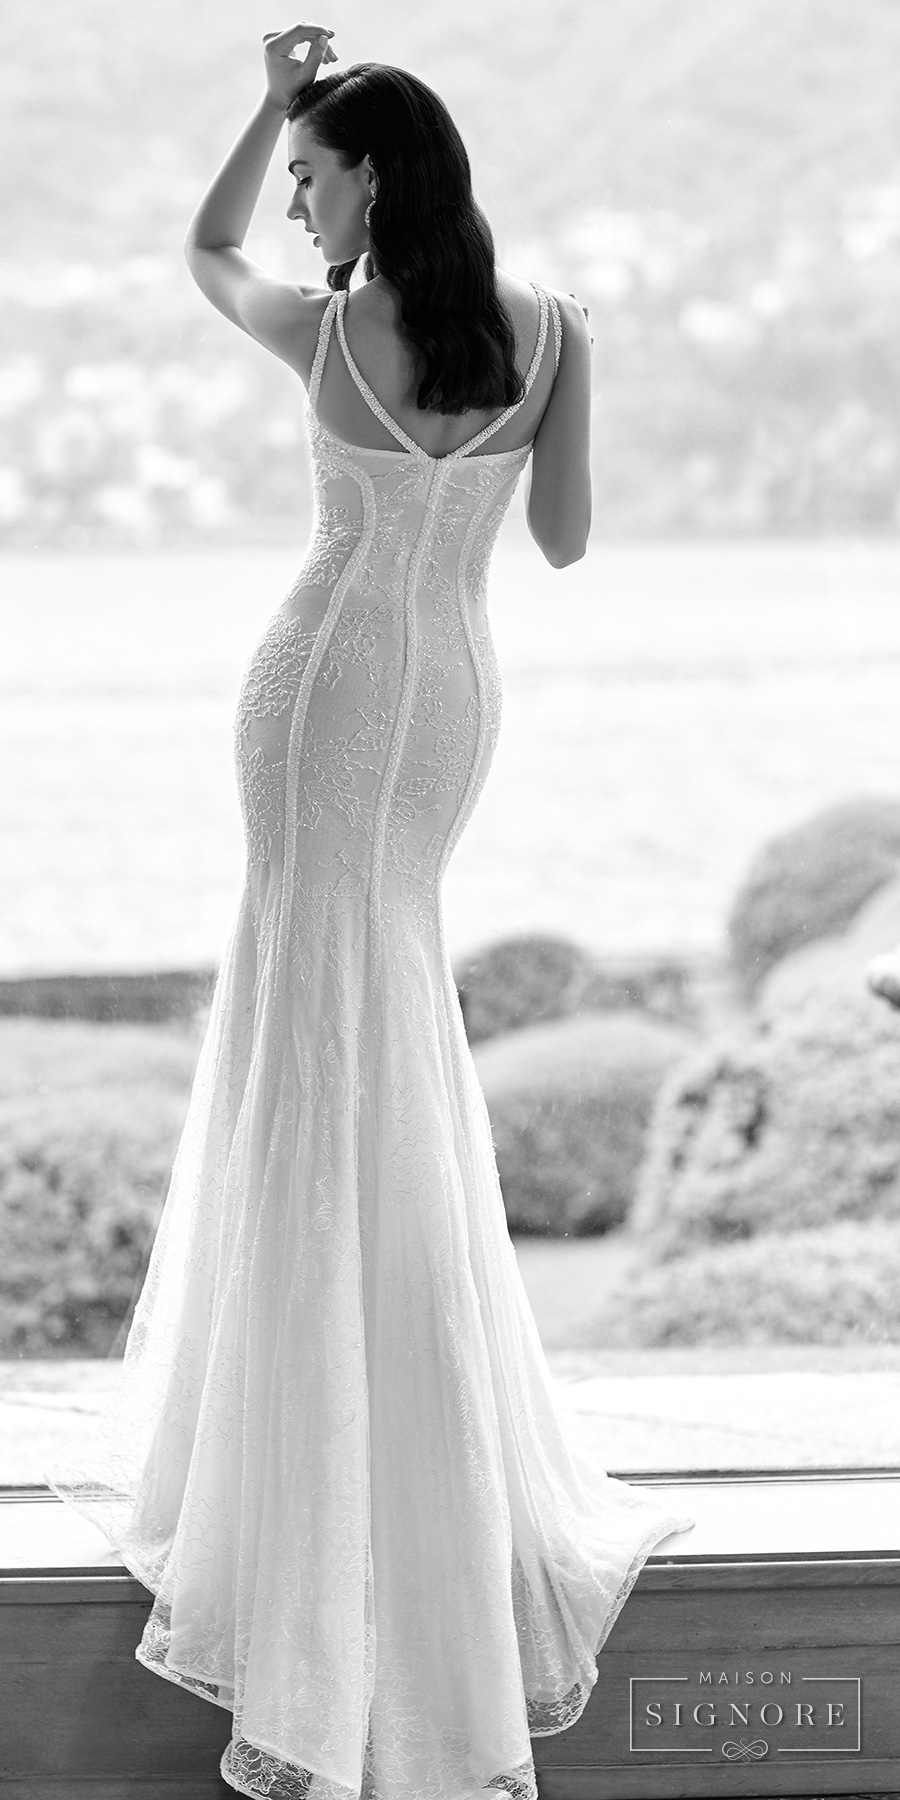 maison signore 2017 bridal sleeveless v neck full embellishment elegant glamorous fit and flare wedding dress sweep train (elin) bv